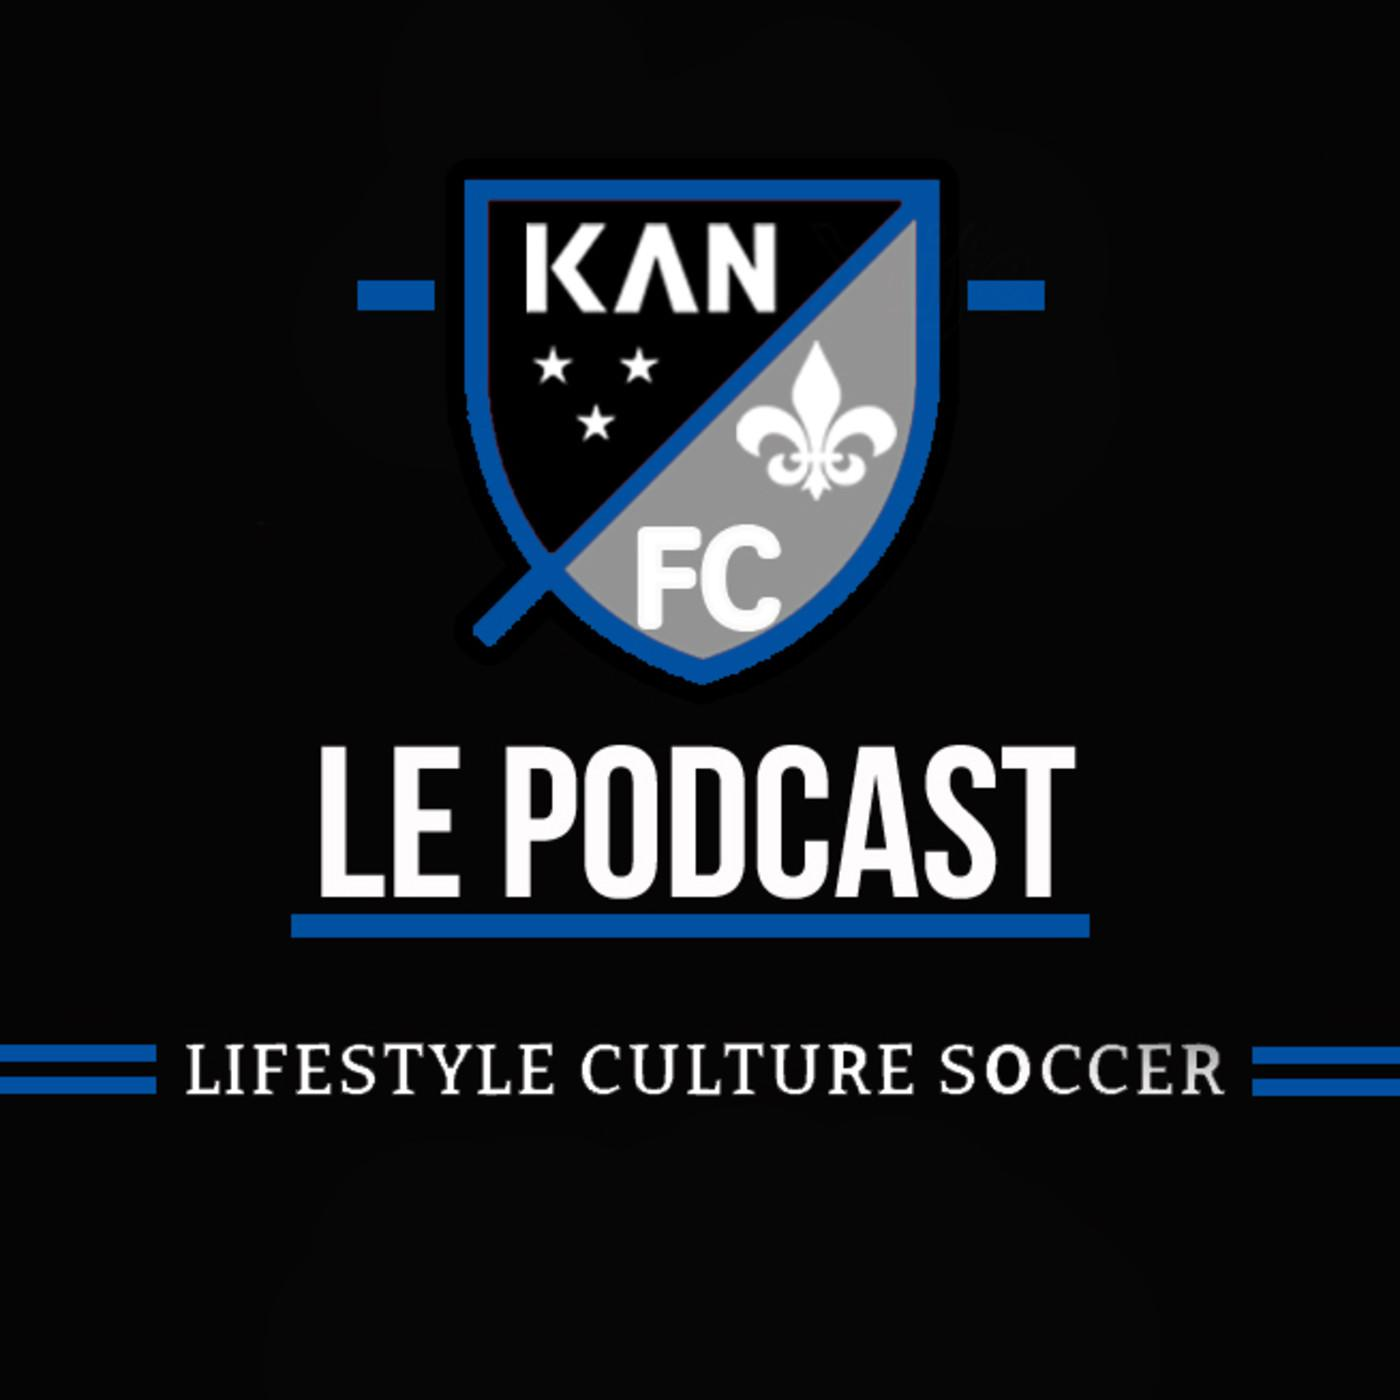 kan fc le podcast kan football club e7Xq1vyBdCO knPerMQ41U7.1400x1400